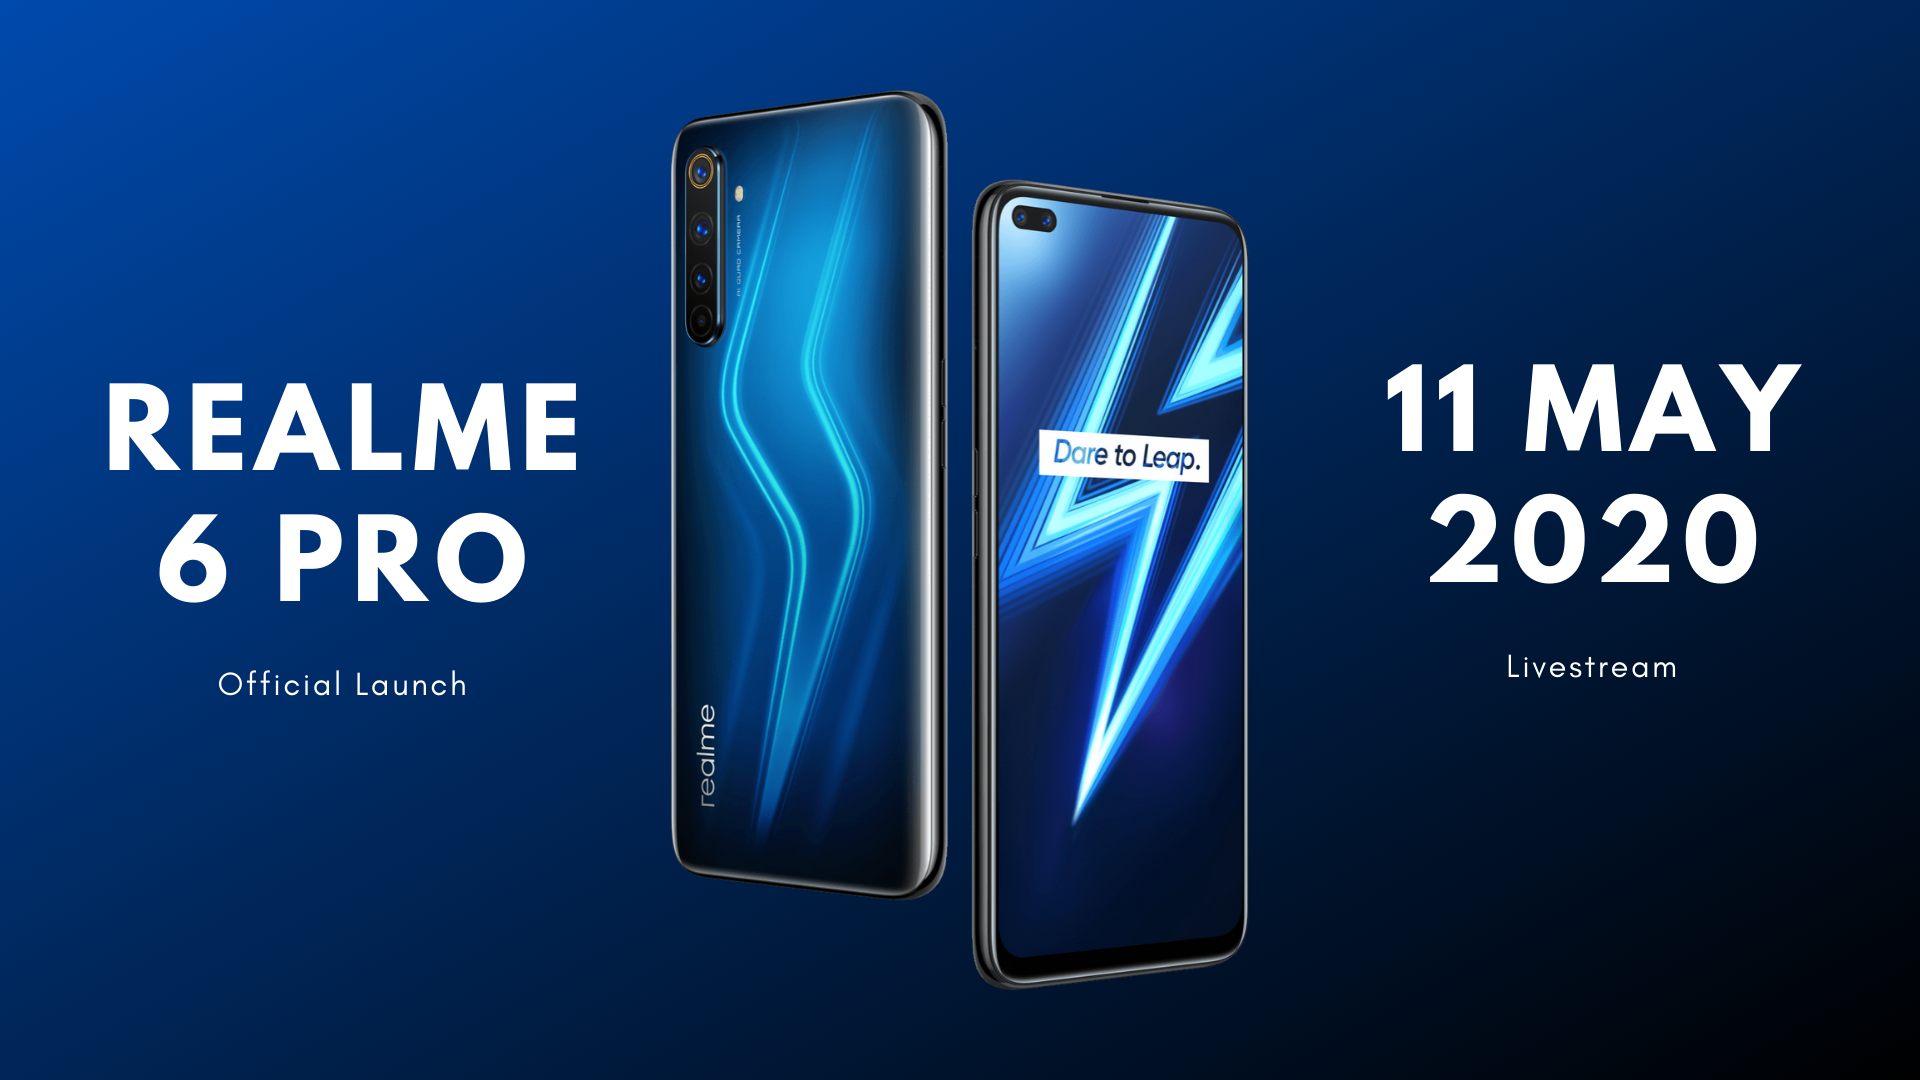 realme 6 pro official launch